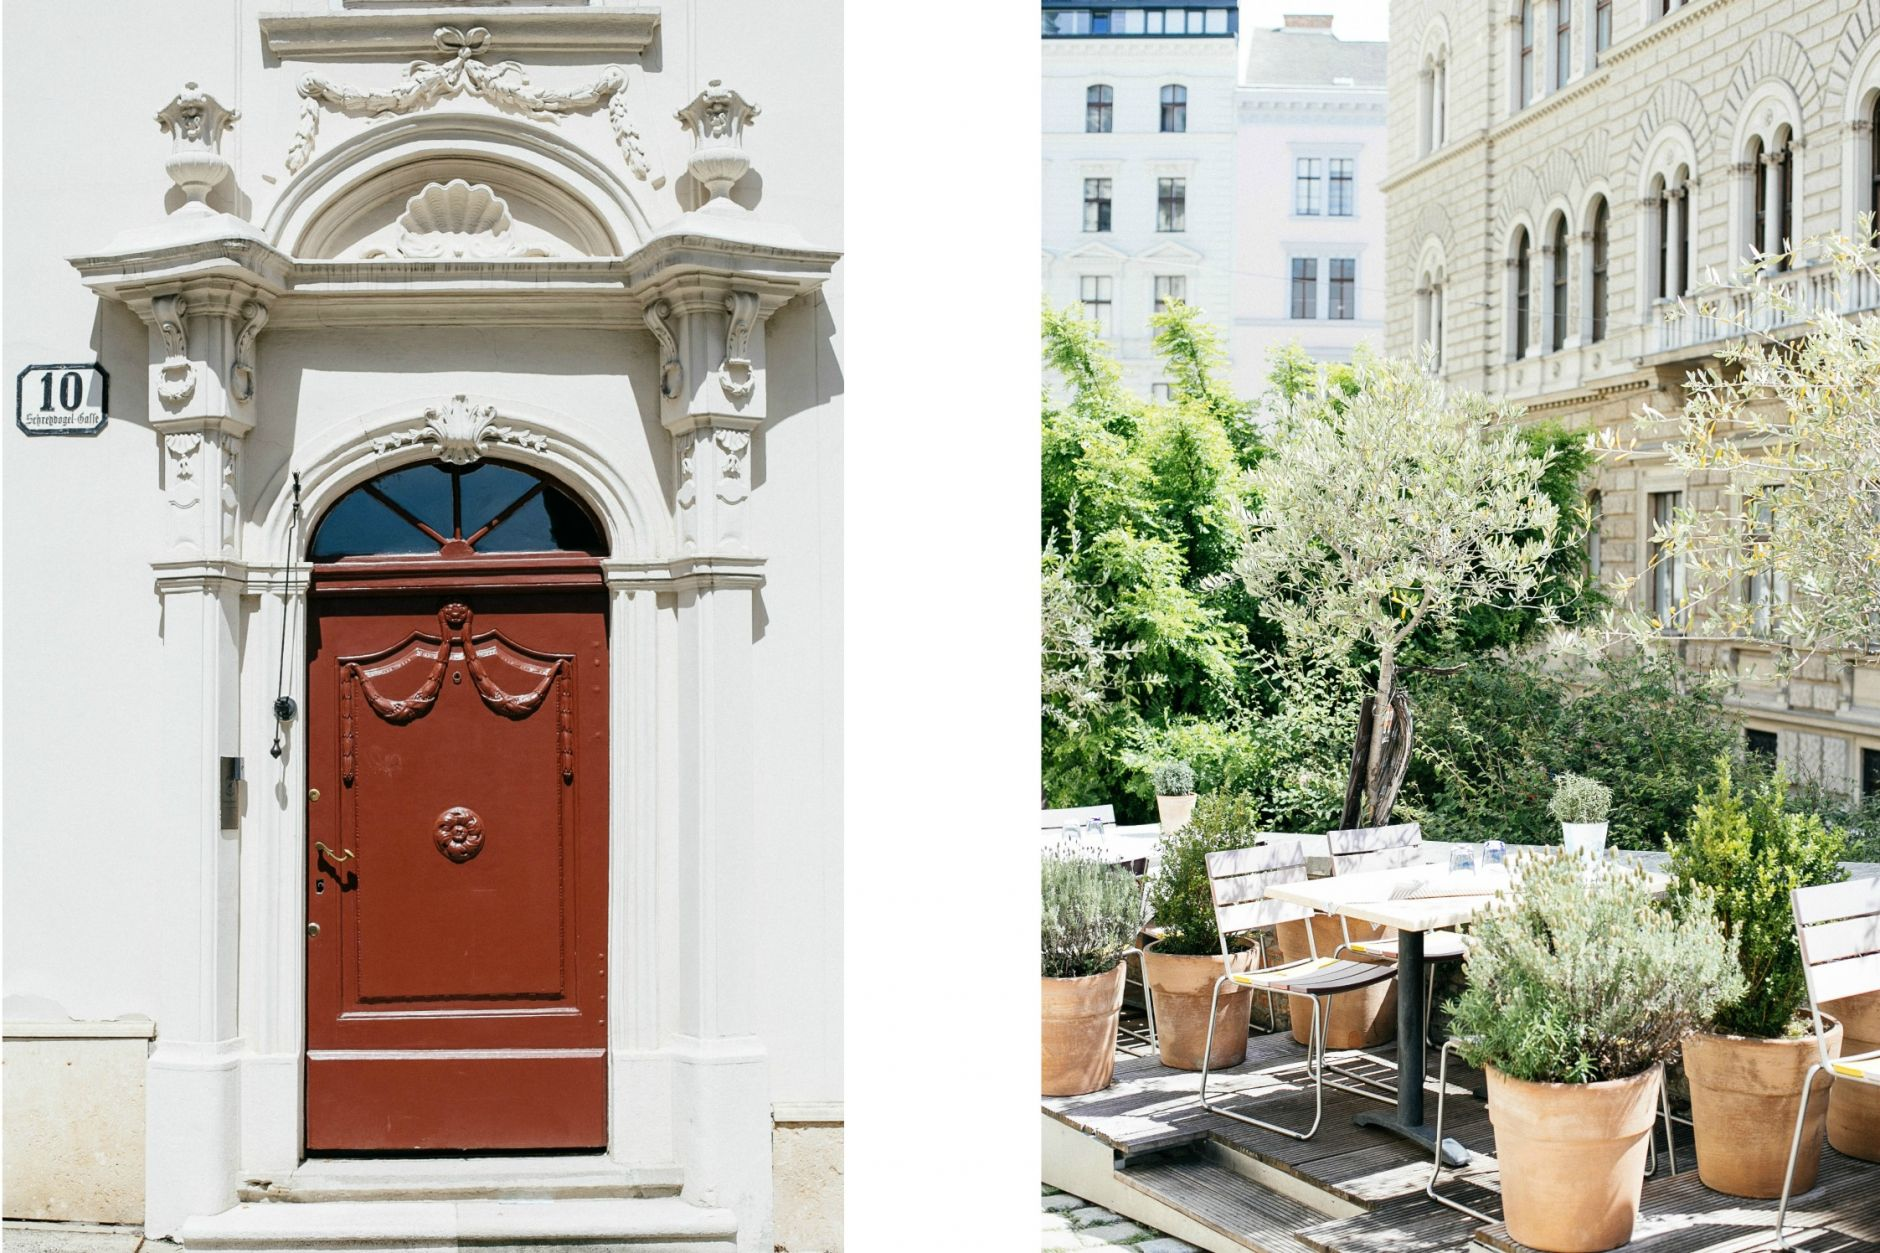 airbnb-hosting-vienna-austria-appartments-for-rent-disicouture-106